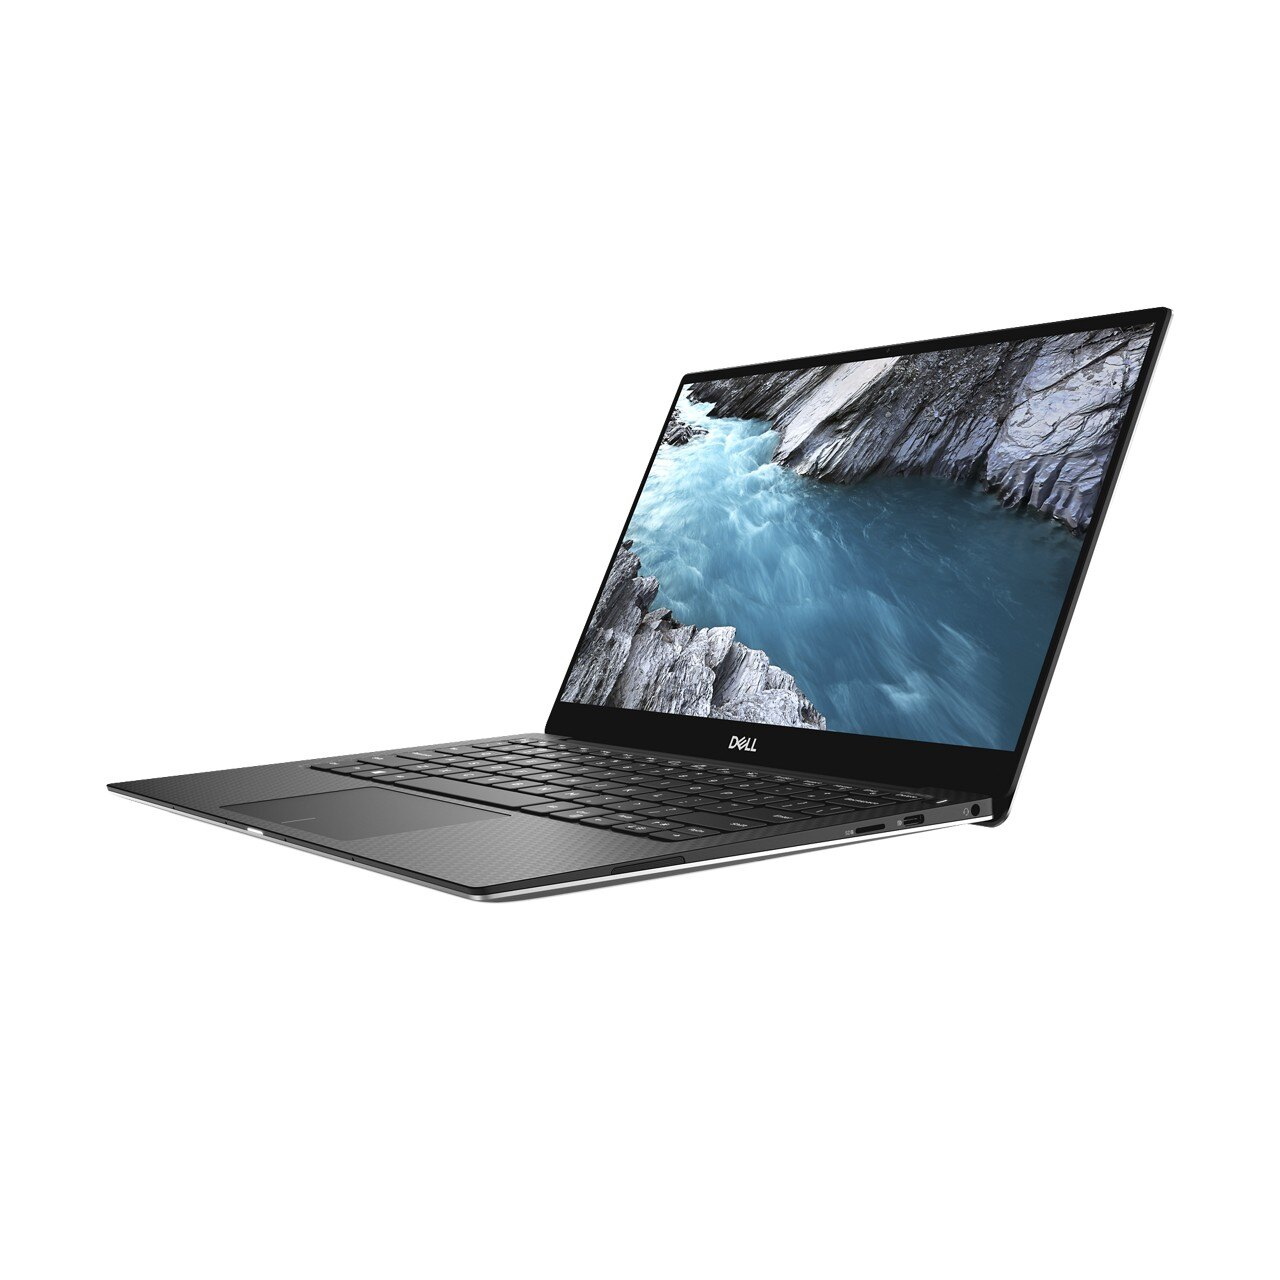 "Dell XPS 13 9380 13.3"" 4K Touch Laptop (Quad i5 / 8GB / 256GB SSD)"